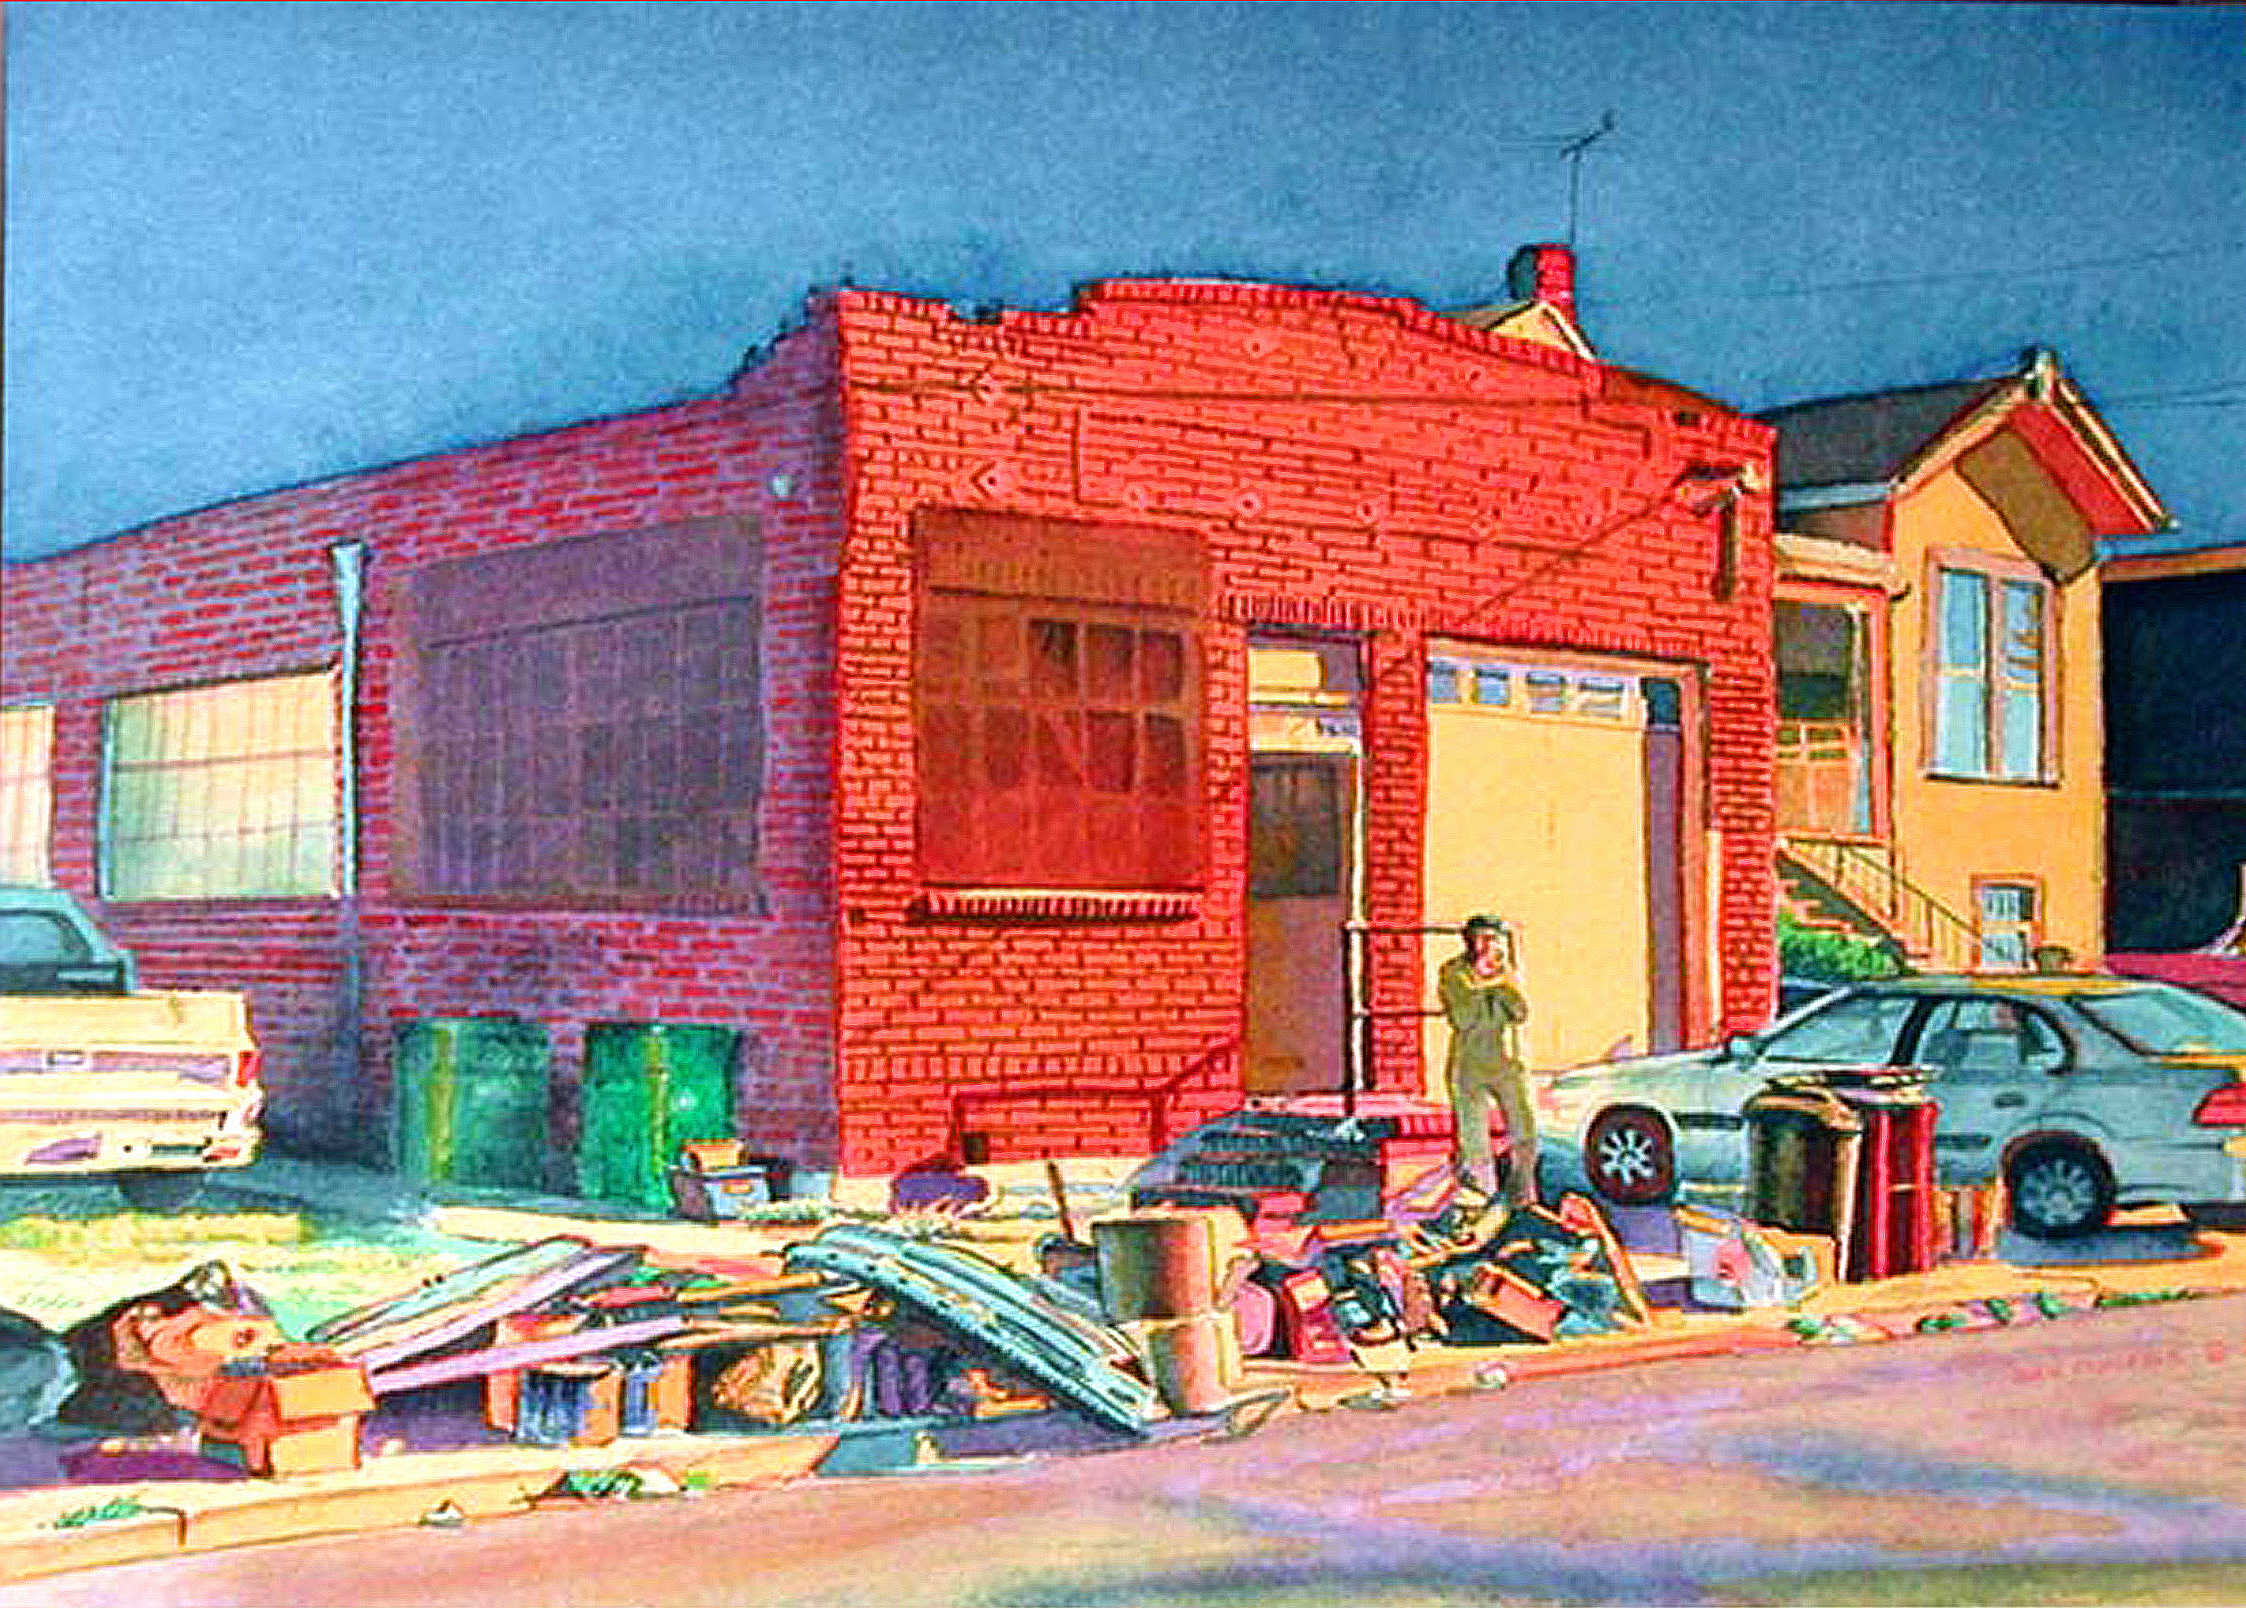 """Title: Art Works Studios aka Warehouse on 60th Street, Oakland 2001    Media: Watercolors    Dimensions: 8"""" x 11""""    Collection of: The Artist"""